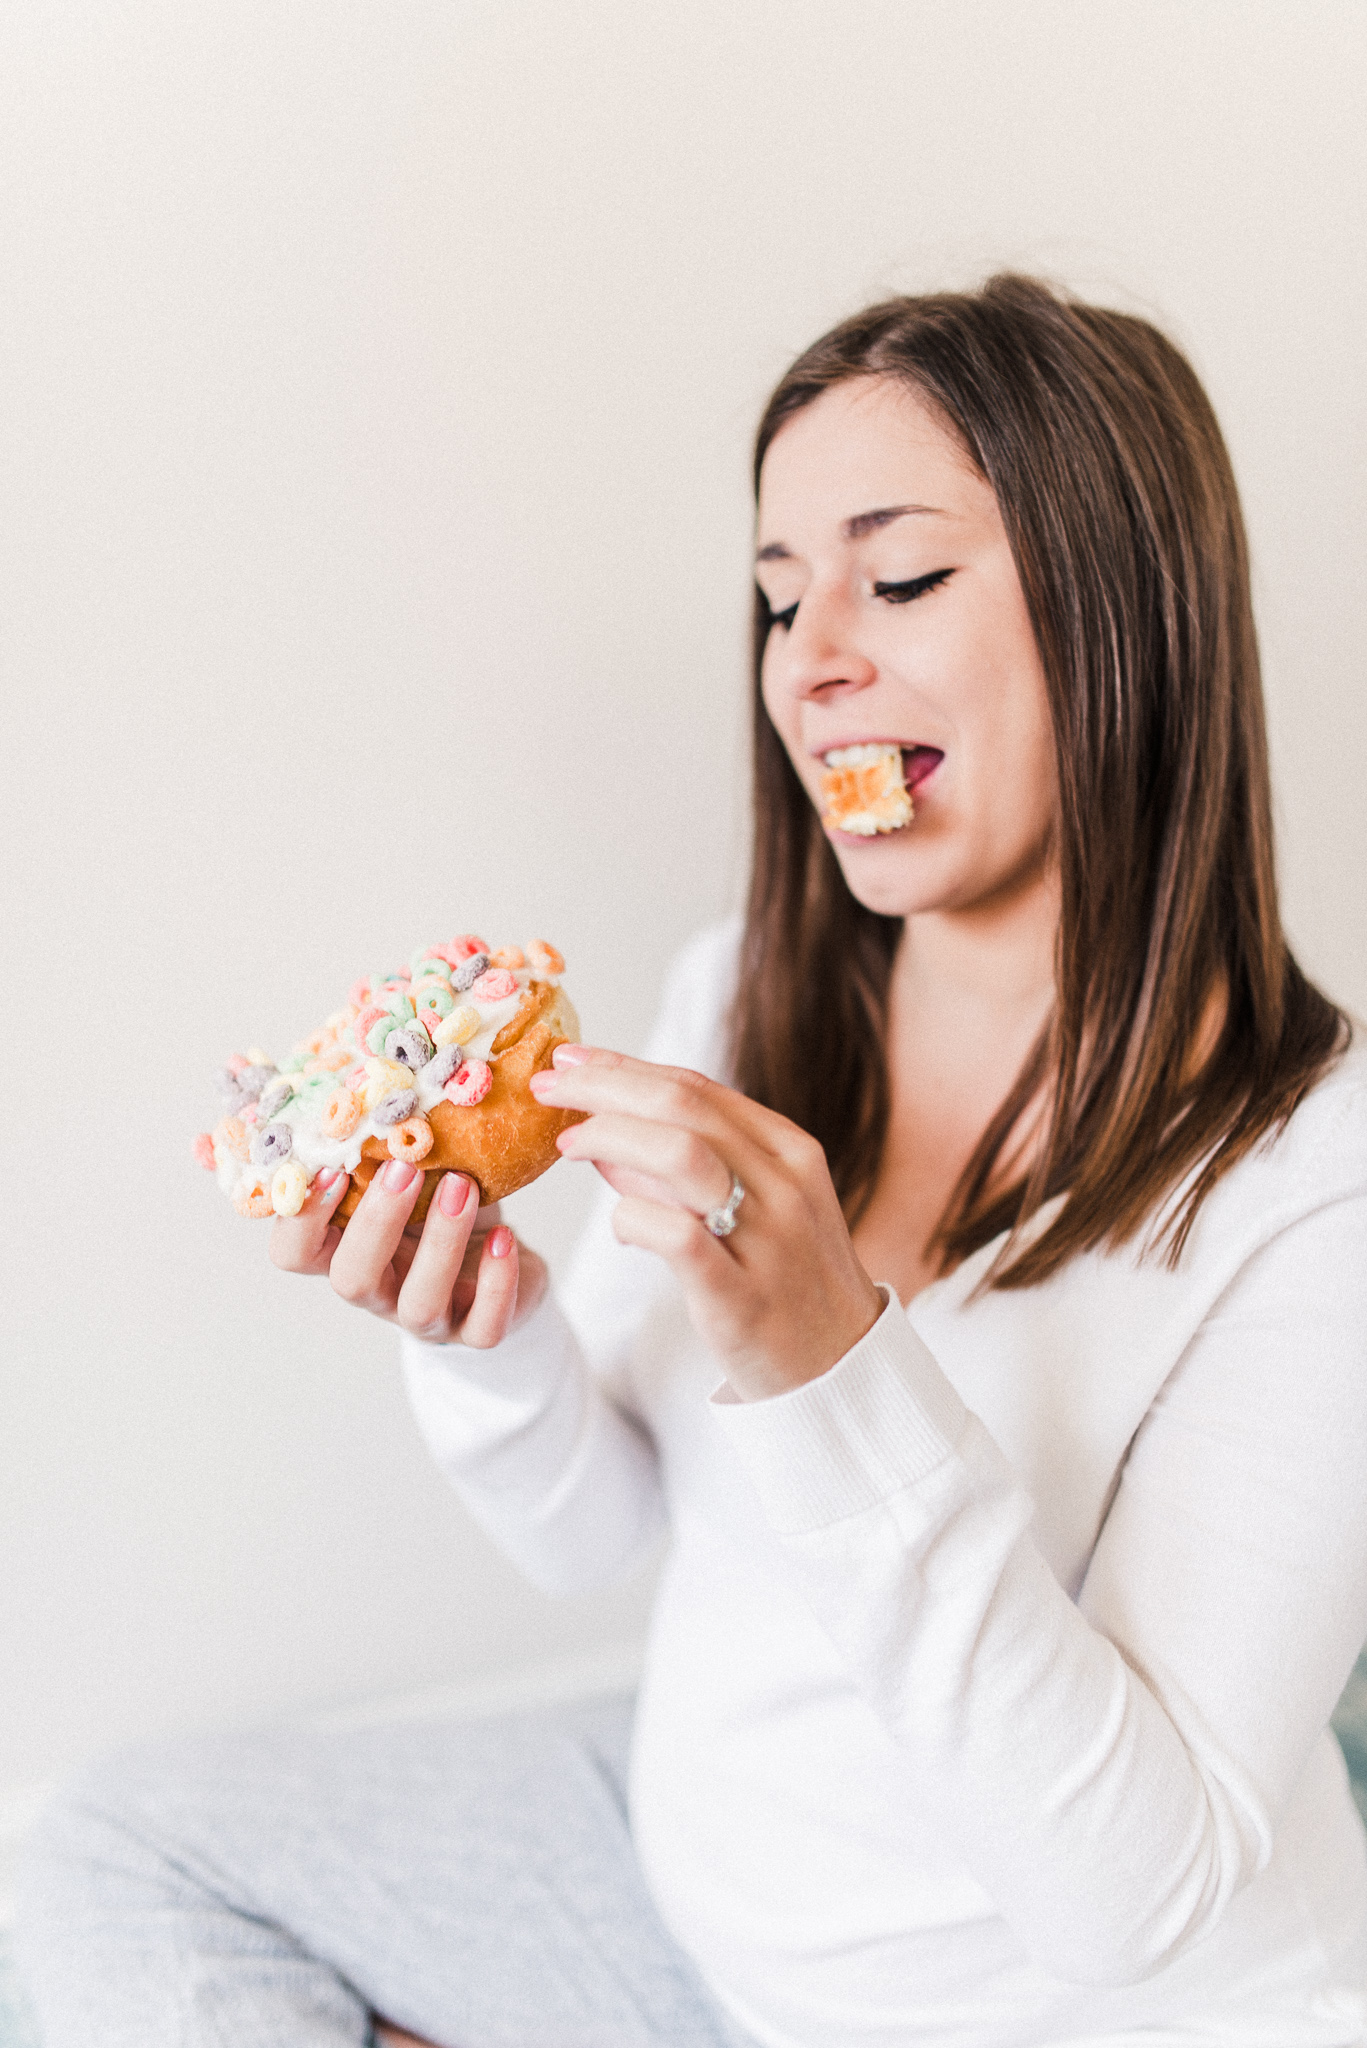 Michaella's Yoga & Donuts Gender Reveal | Maternity Photography Studio in Noblesville, IN | Indianapolis Newborn Photographers